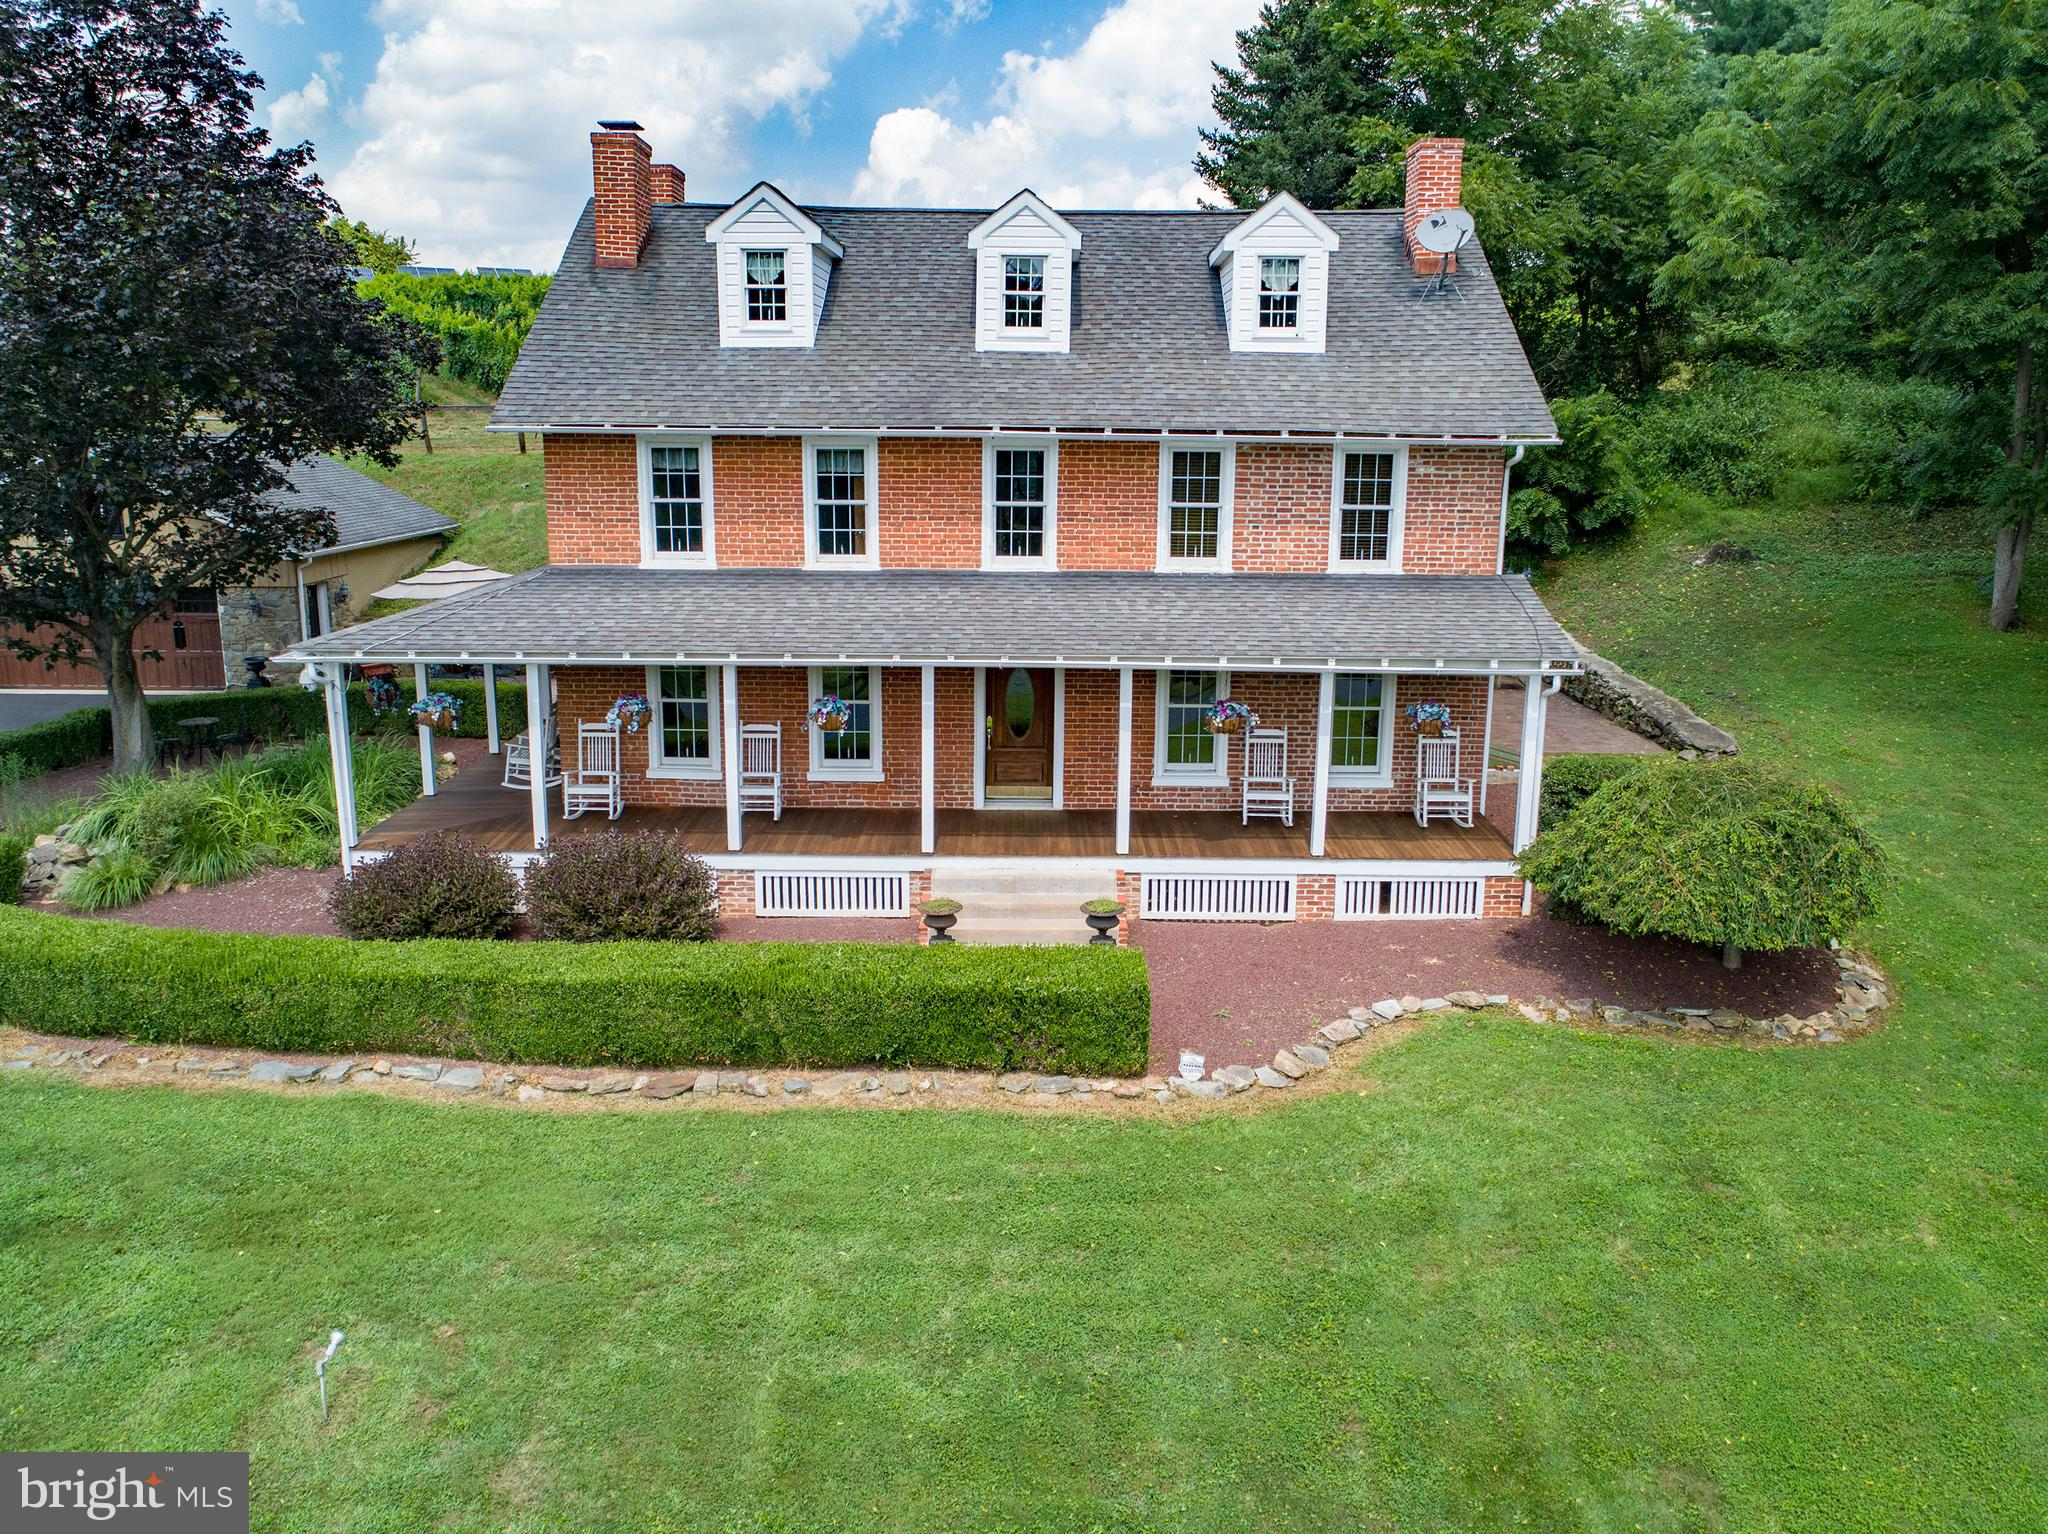 110 LOWER HOPEWELL ROAD, OXFORD, PA 19363